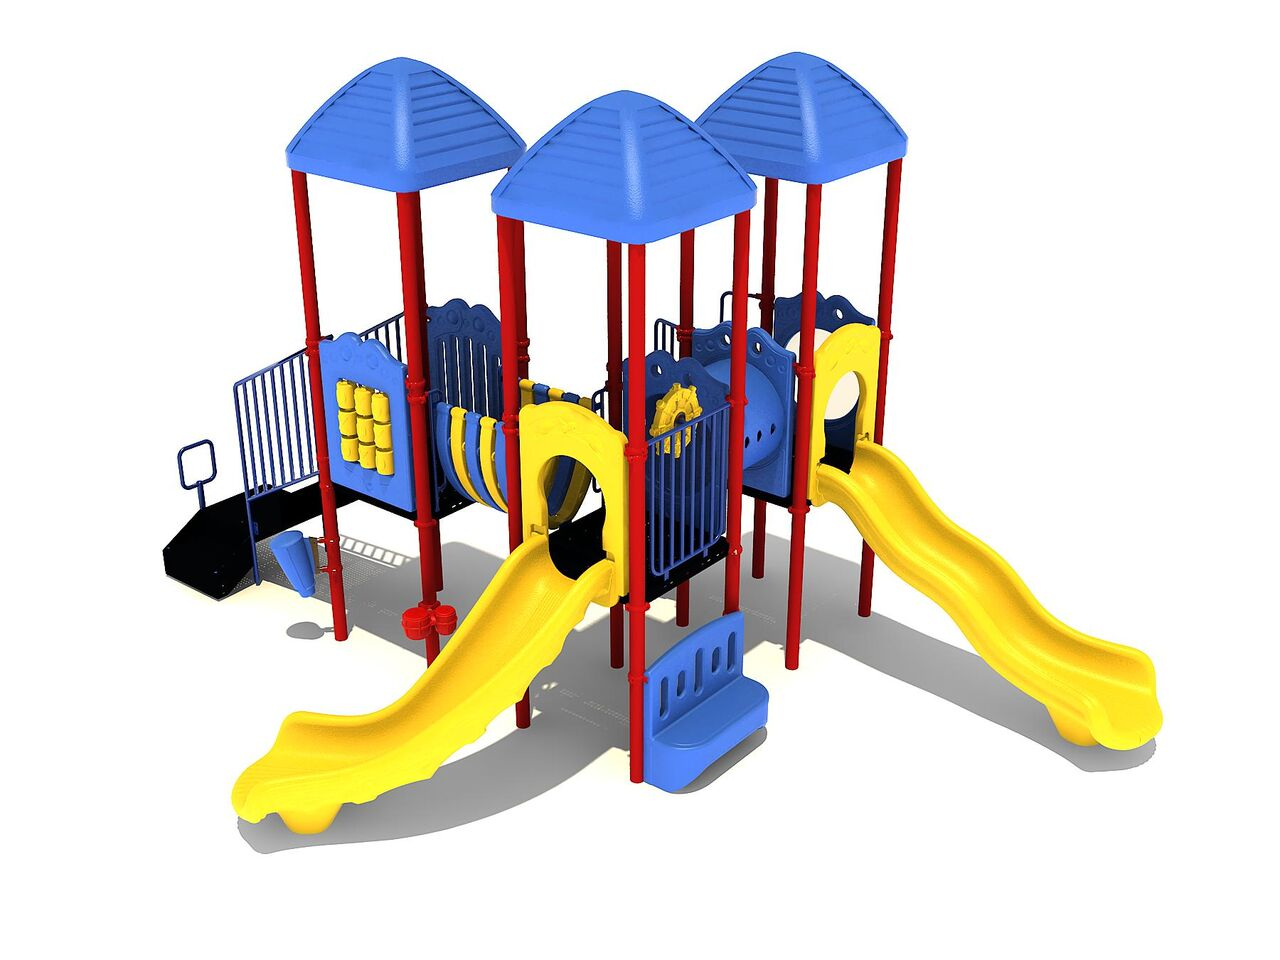 threes company play system - Commercial Playground Equipment